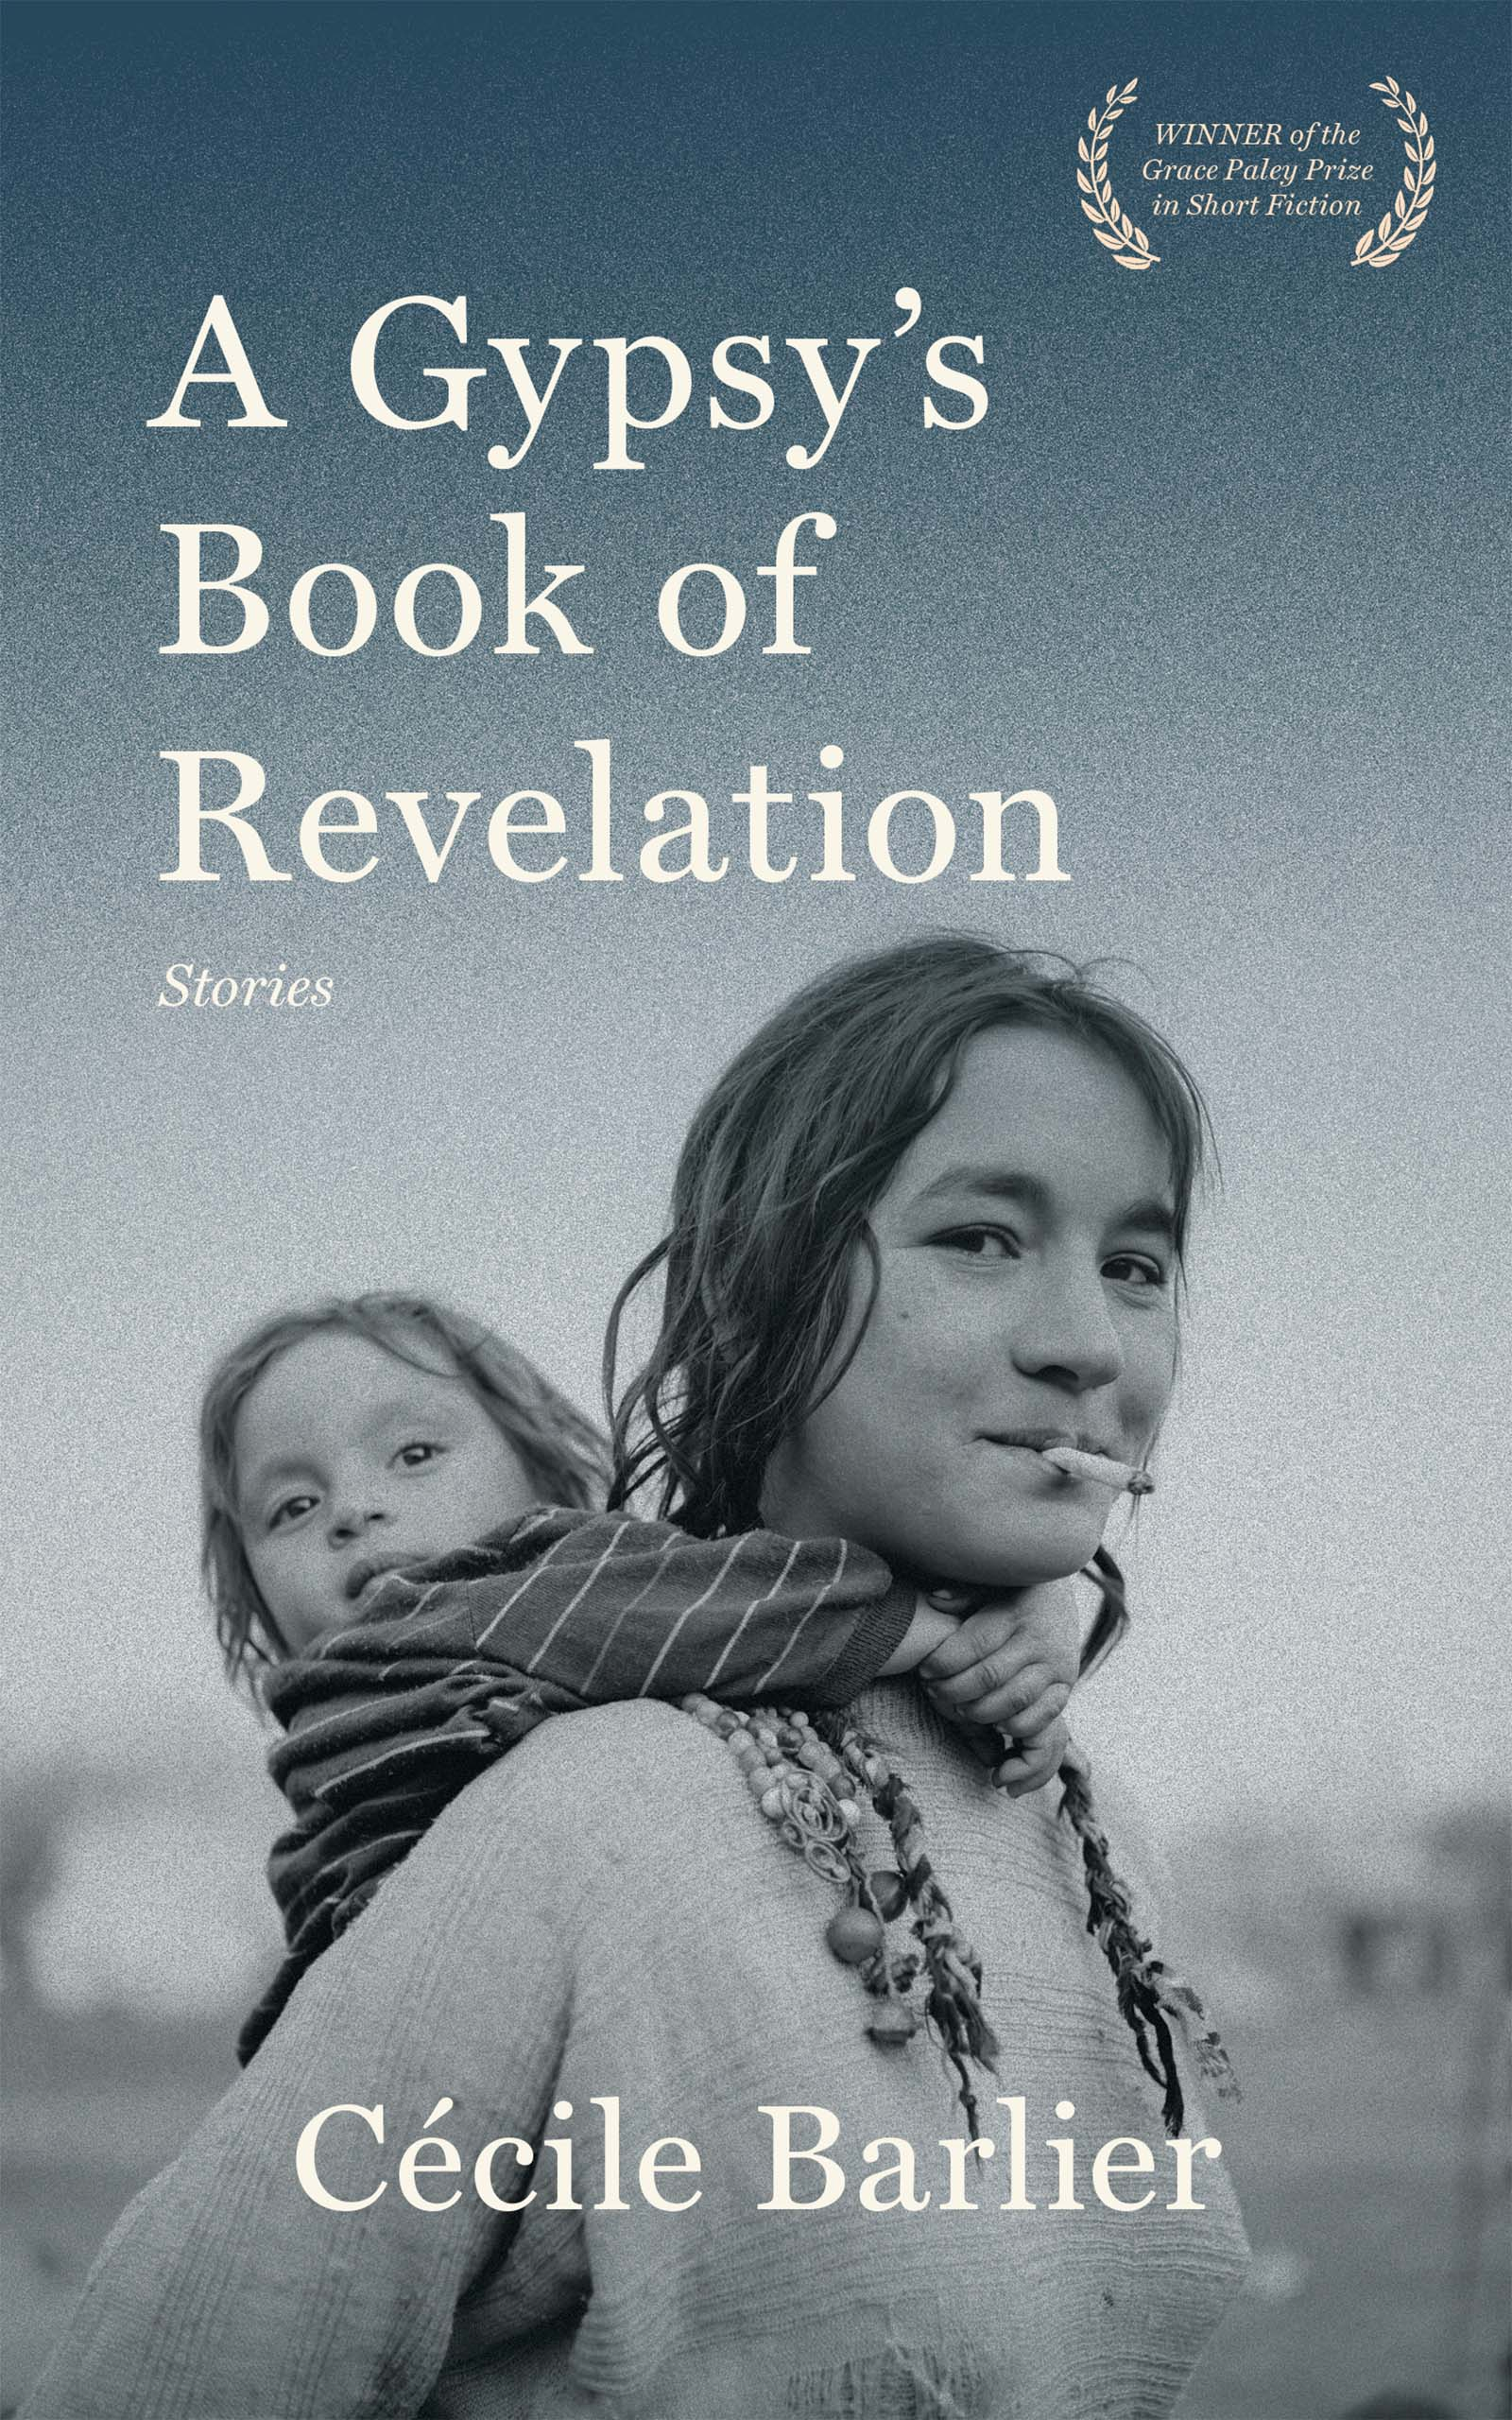 A photograph of a woman with a cigarette in her mouth carrying a female child with white script that reads A Gypsy's Book of Revelation by Cecile Barlier.